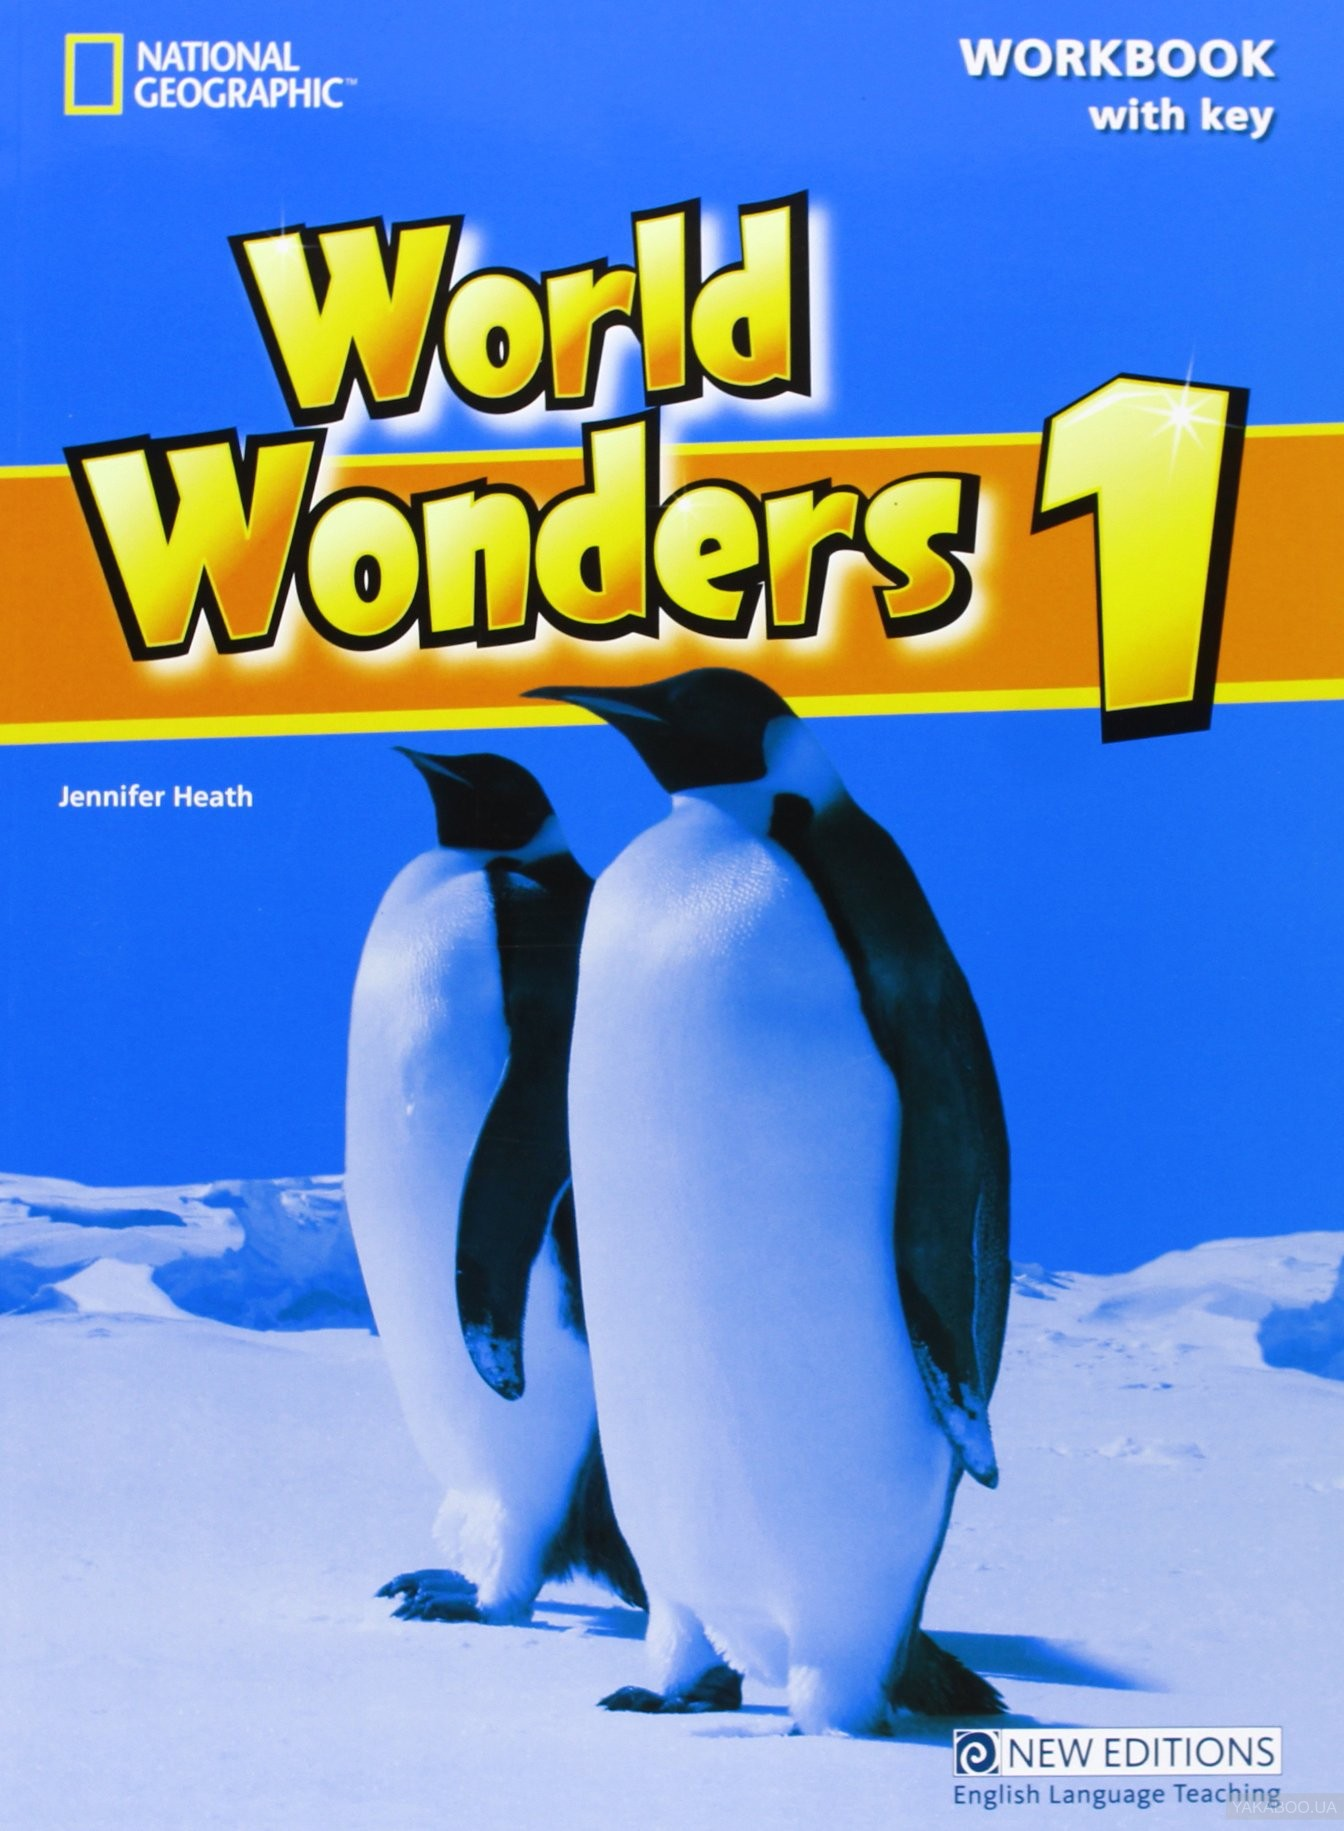 World Wonders 1. Workbook with Key